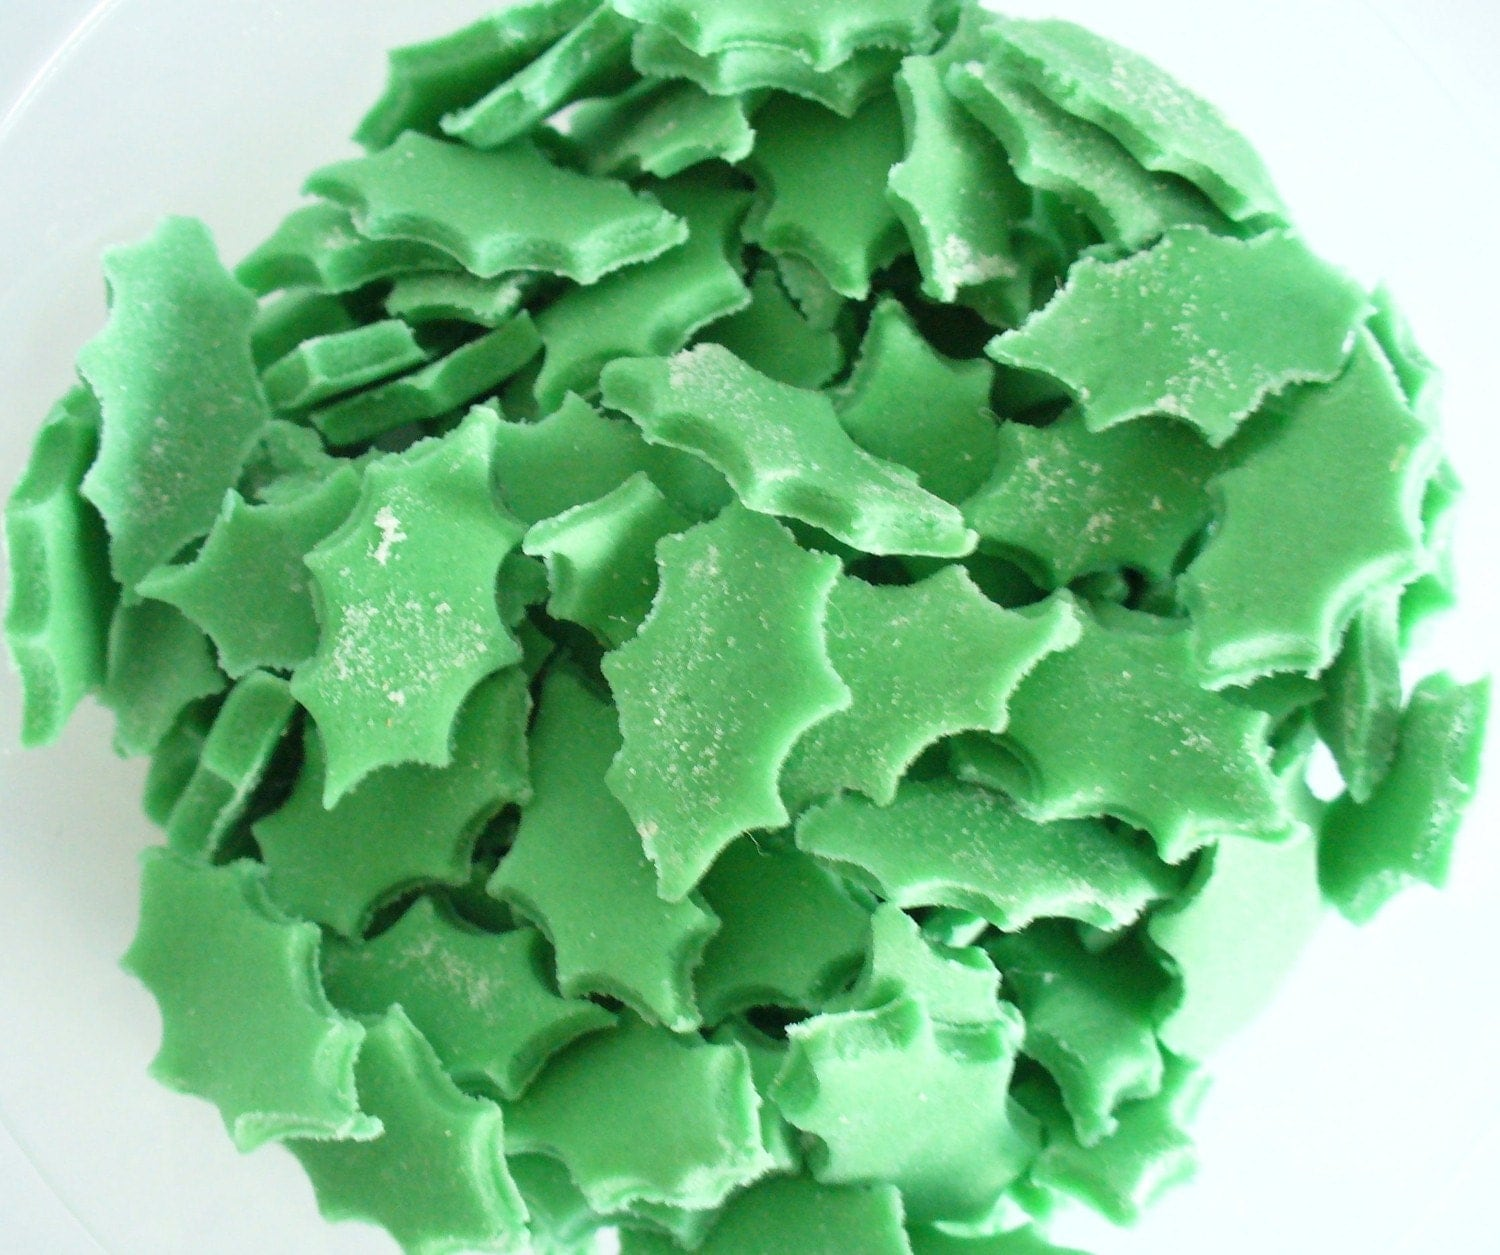 Edible Cake Decorations Holly Leaves : Items similar to Holly Leaves - edible cake decorations ...